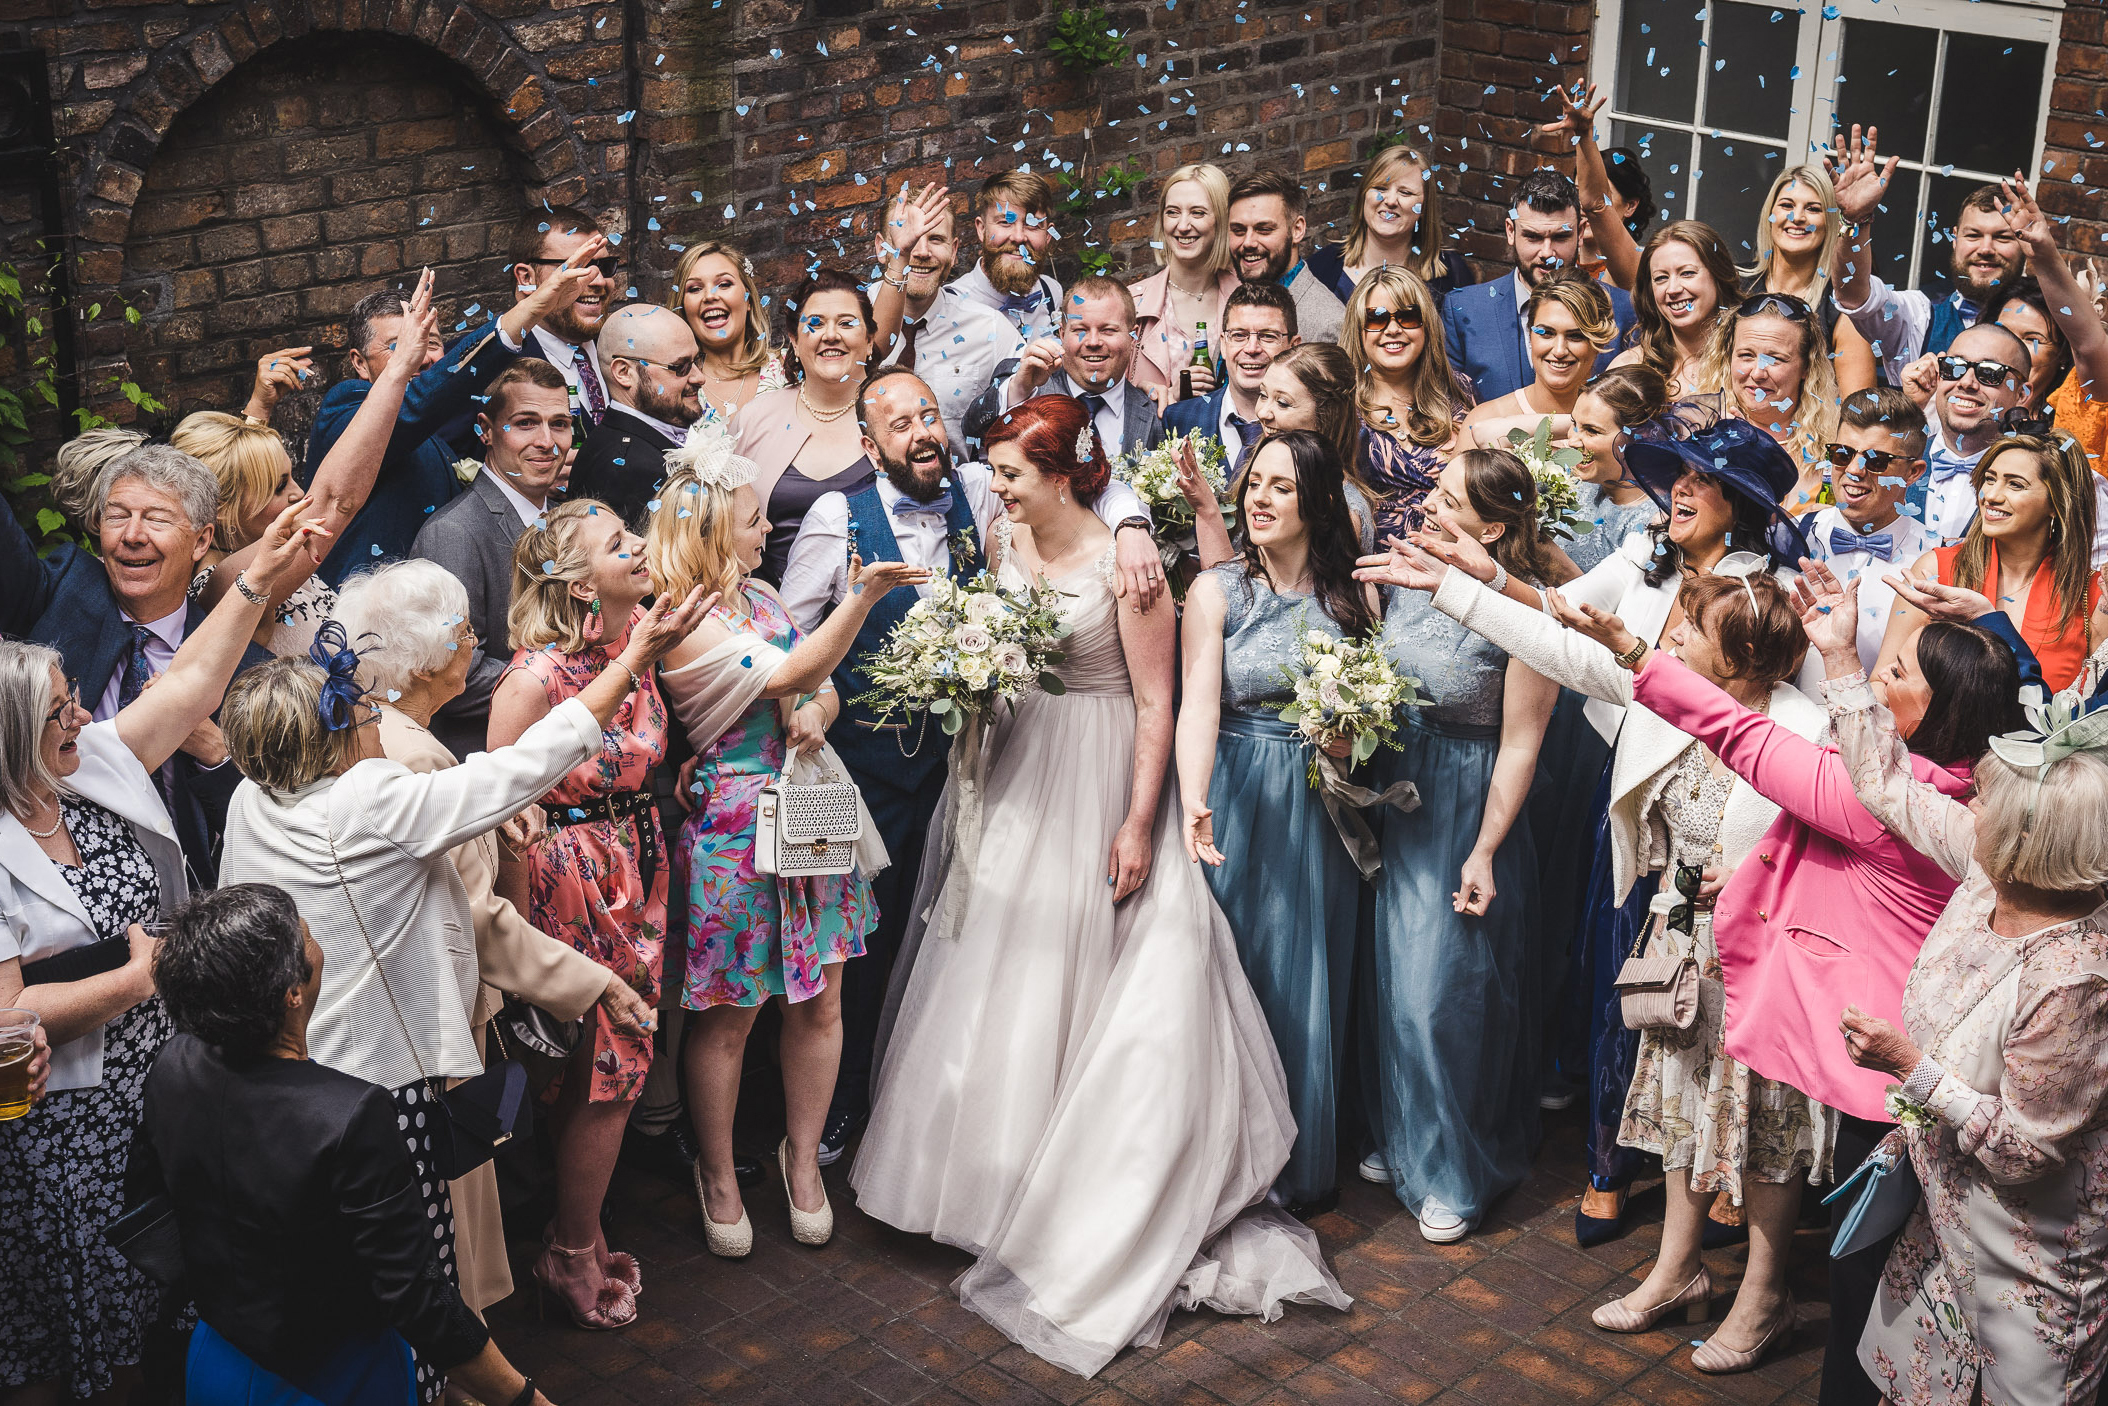 Do you offer half day packages?  - I'm passionate about authentic, emotional and complete storytelling. For this reason, I commit to each and every wedding 100%, meaning only full coverage from bridal preparations through to the dancing.